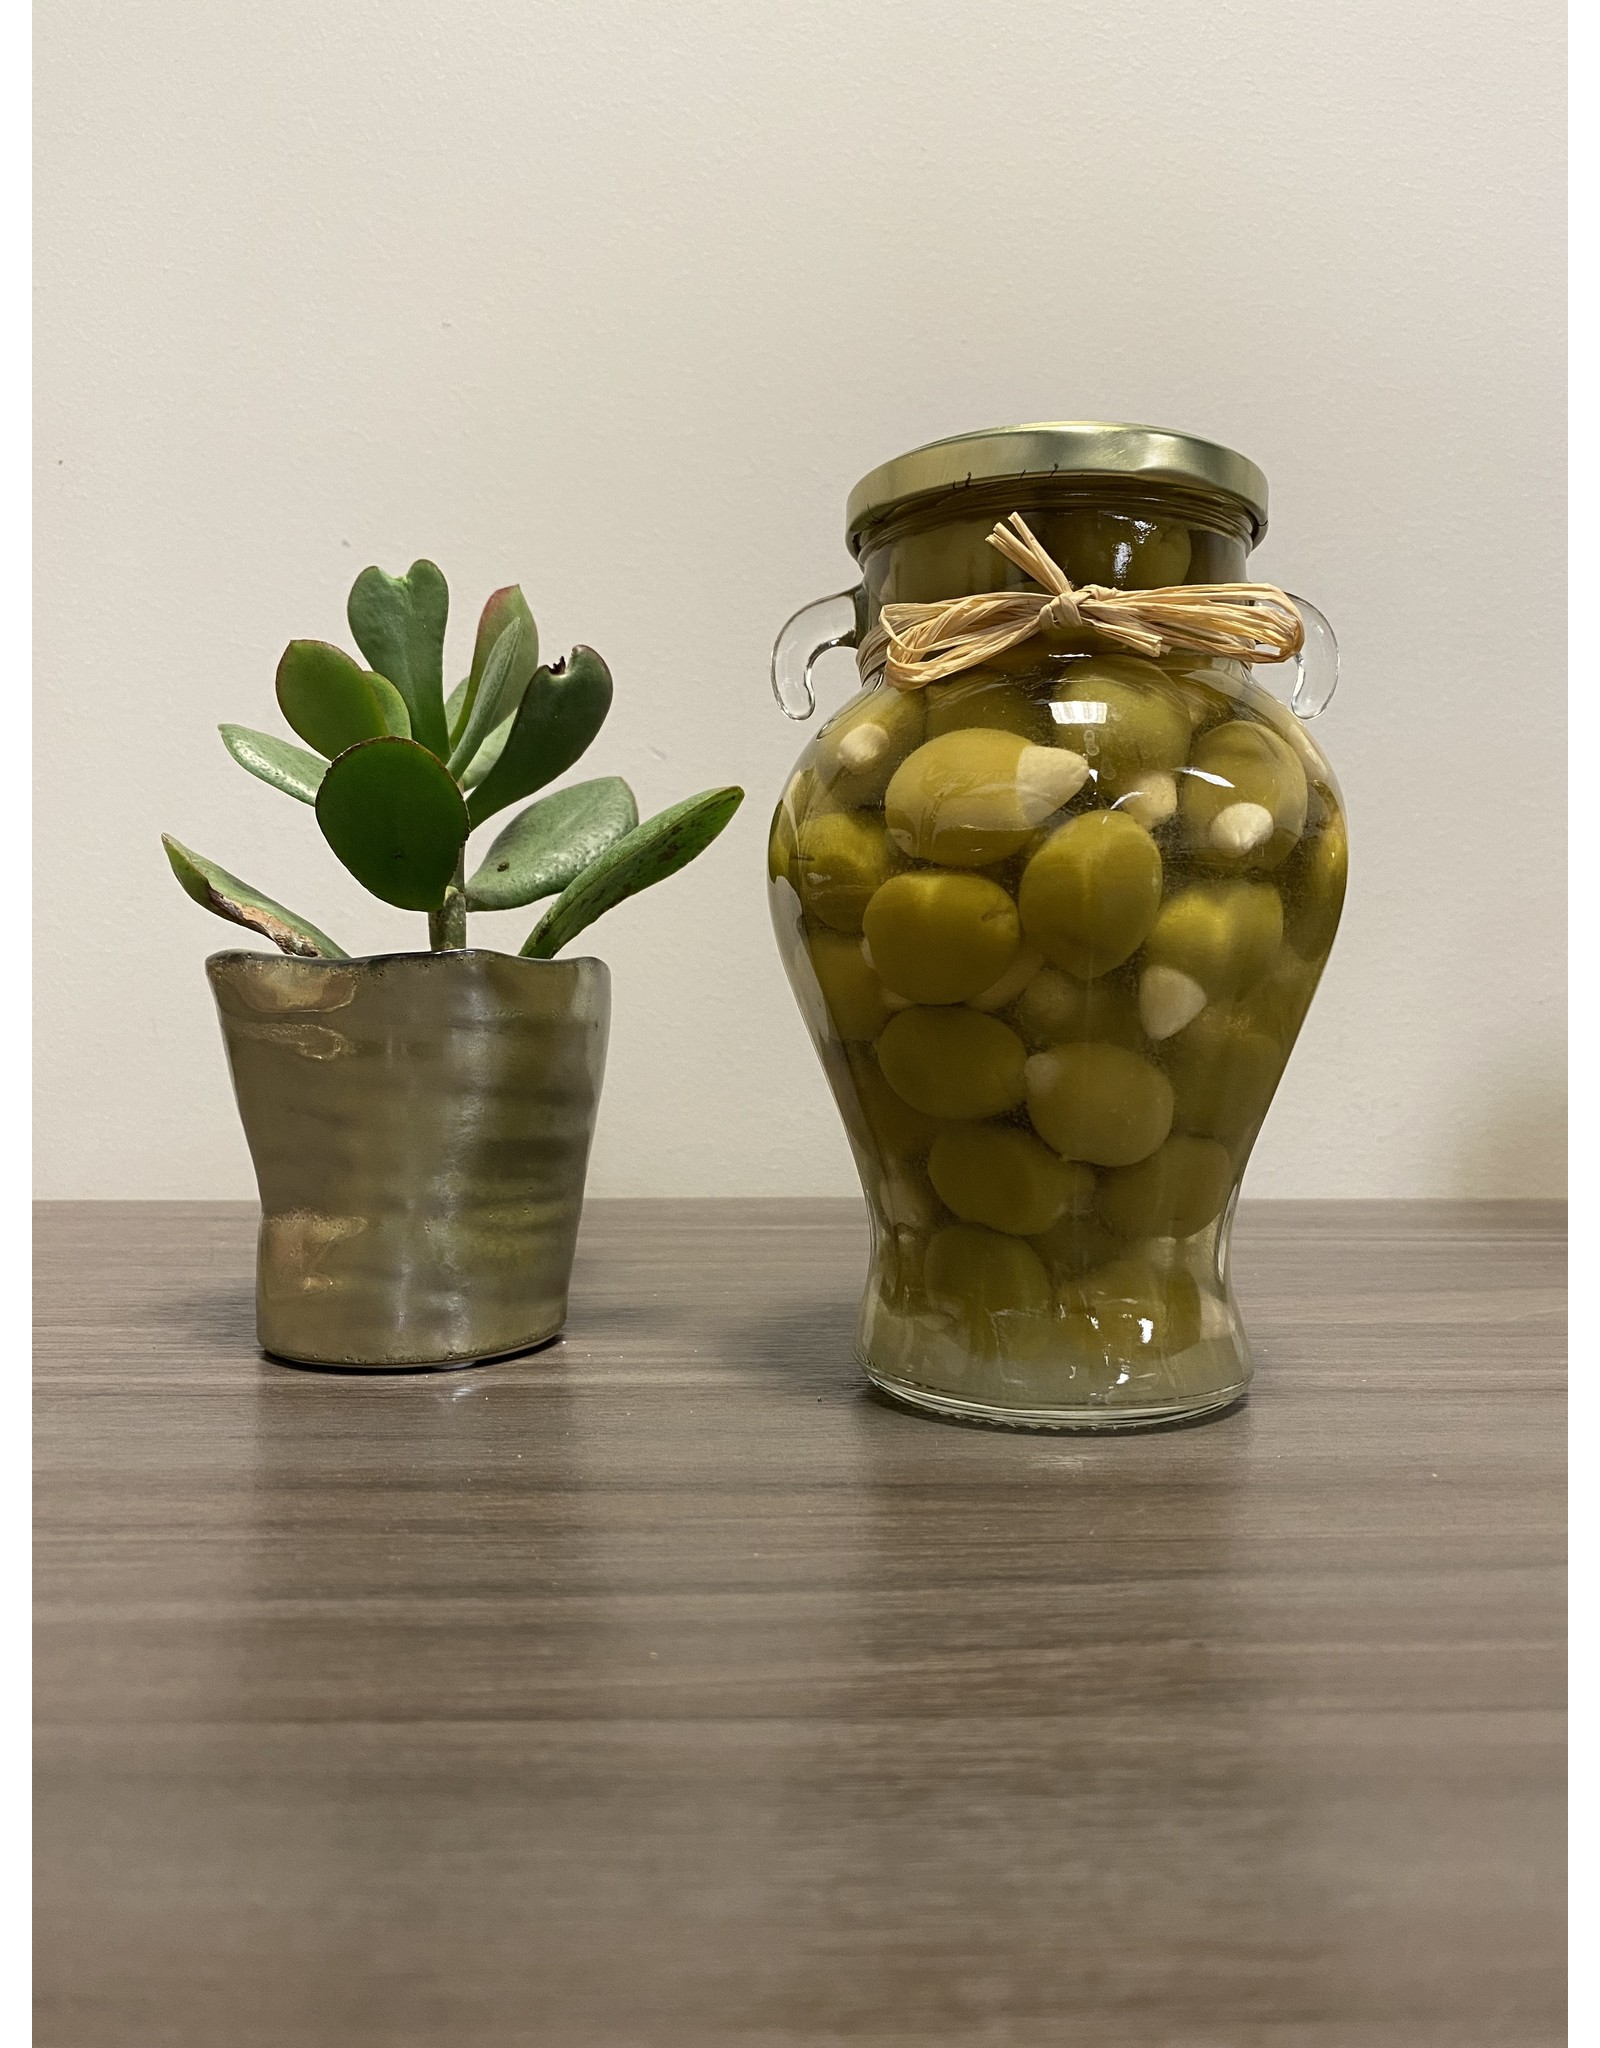 Olives Stuffed with Almond